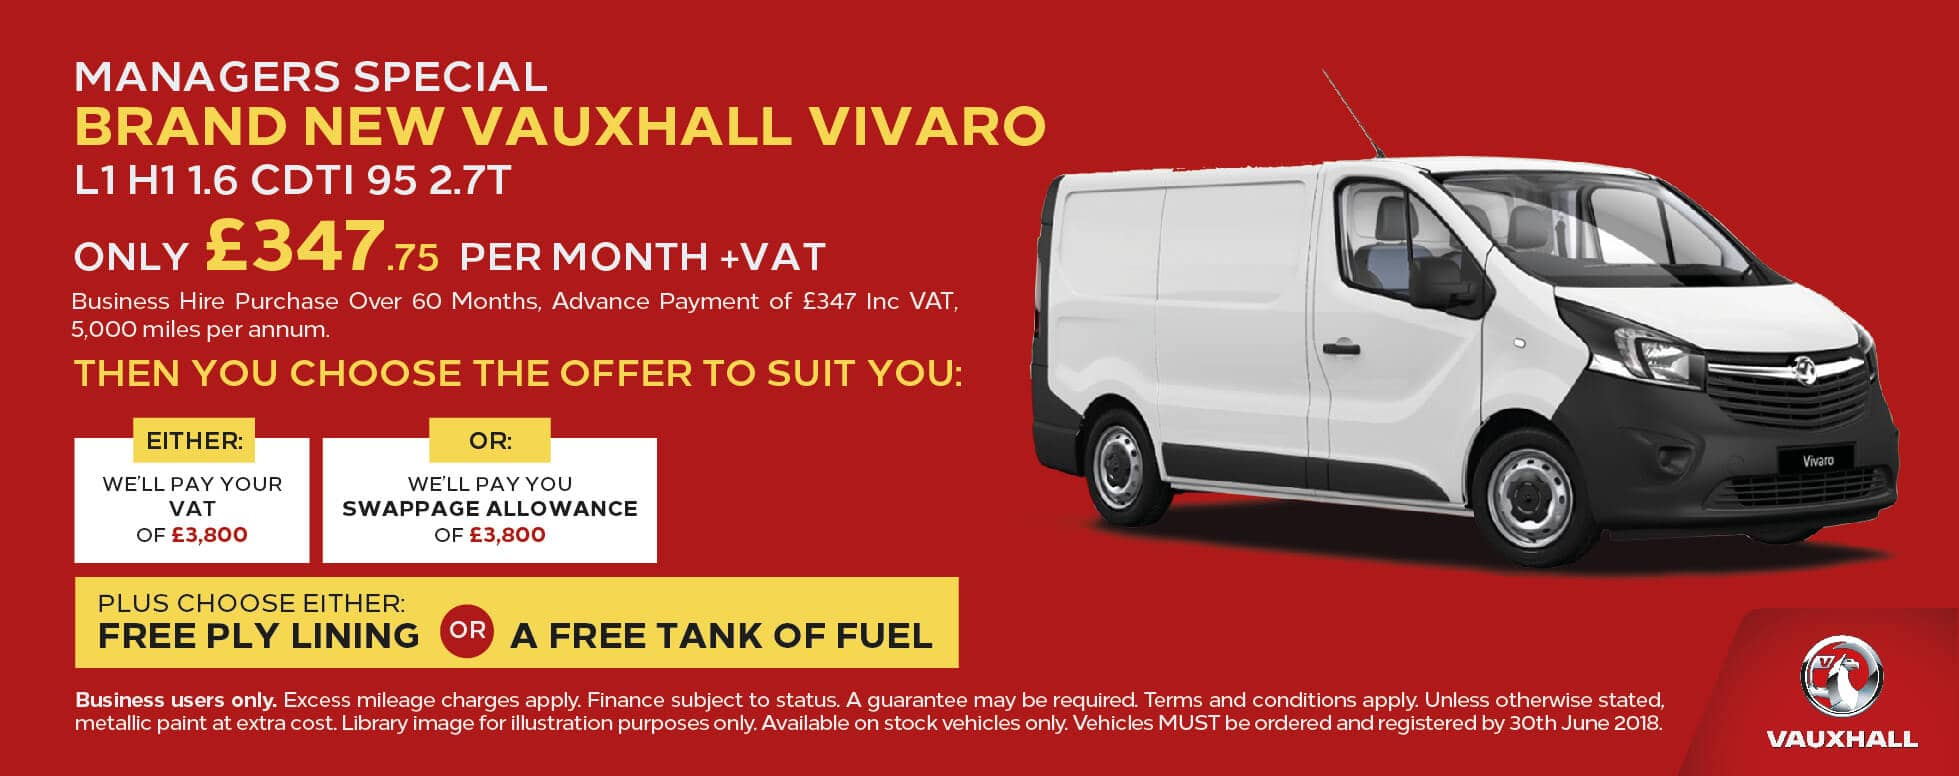 Manager Specials Vauxhall Vivaro L1 BB